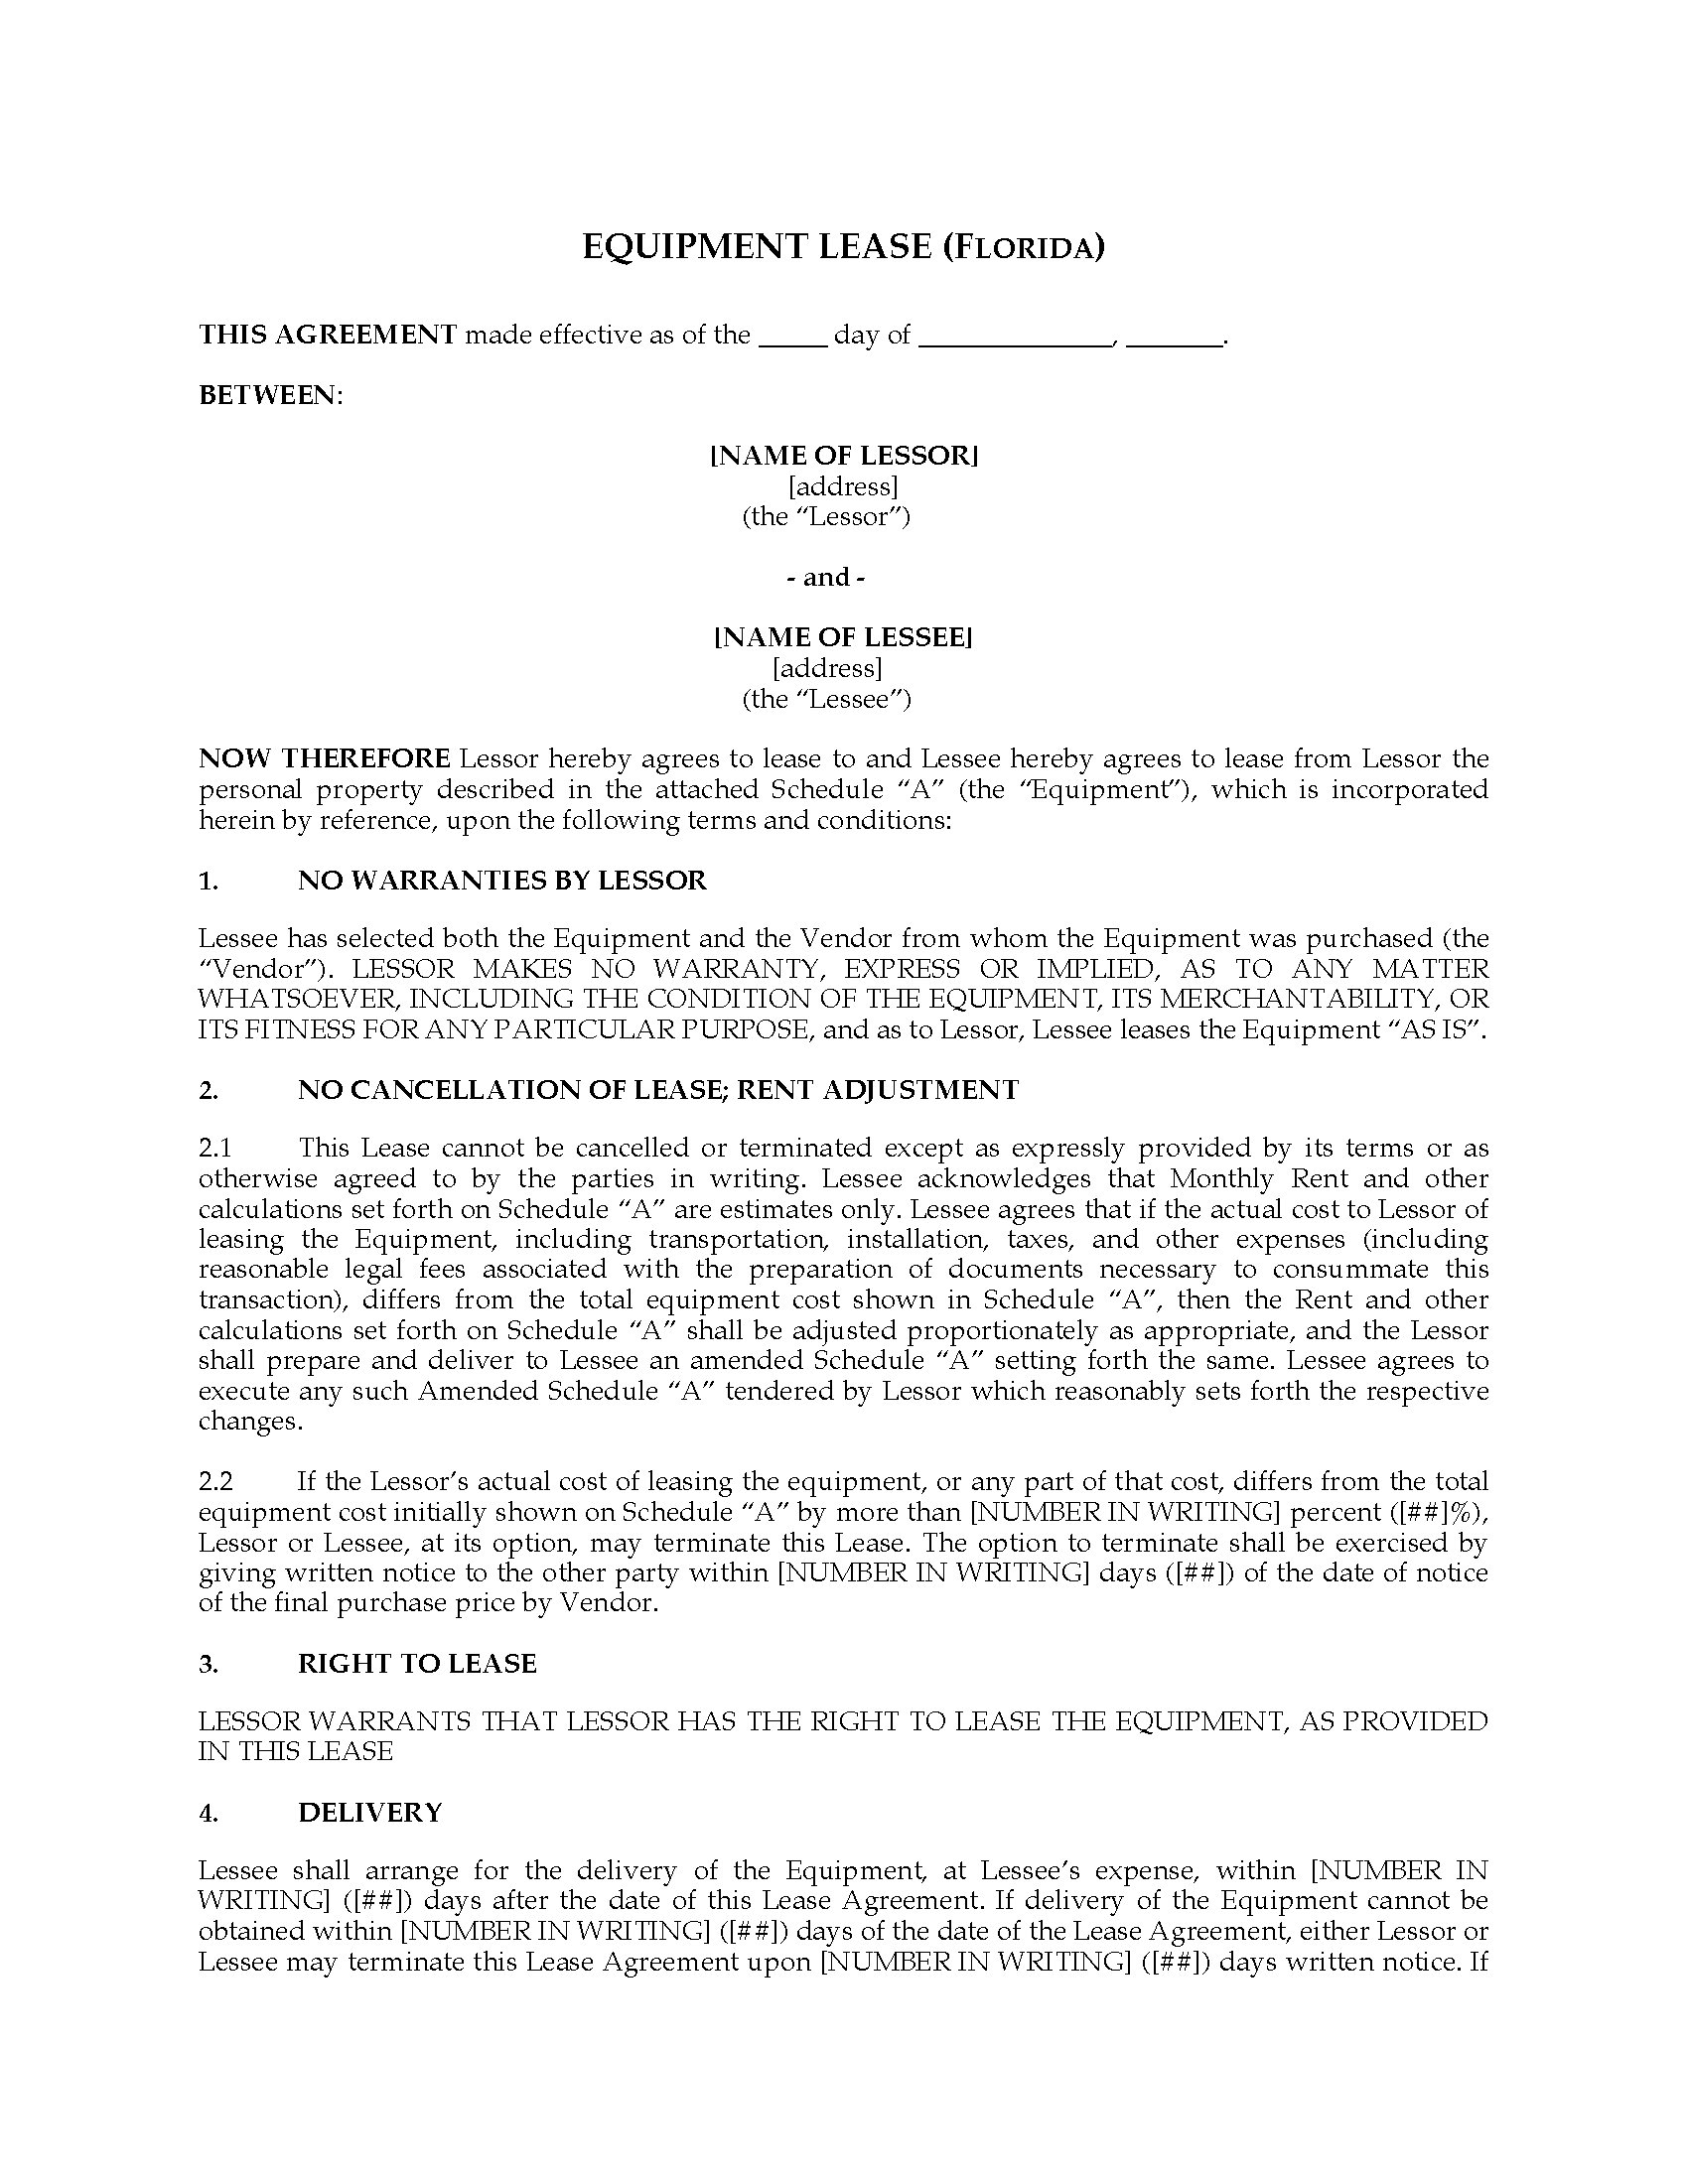 Florida Equipment Lease Agreement Legal Forms And Business